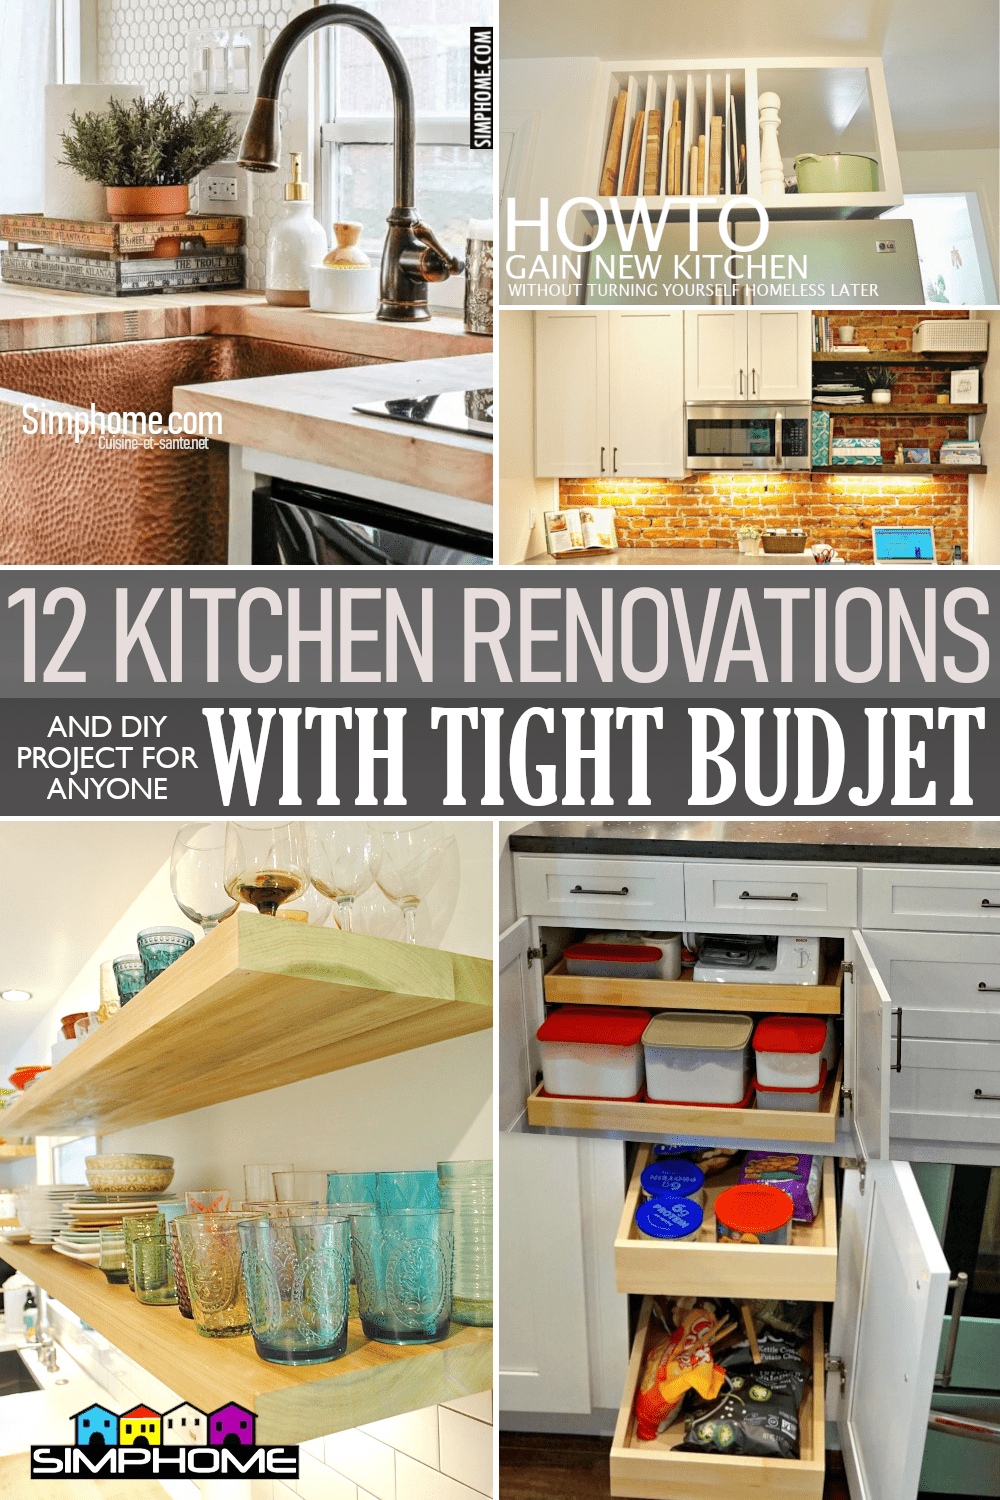 12 Small Kitchen Renovation Ideas On A Budget via Simphome.comFeatured